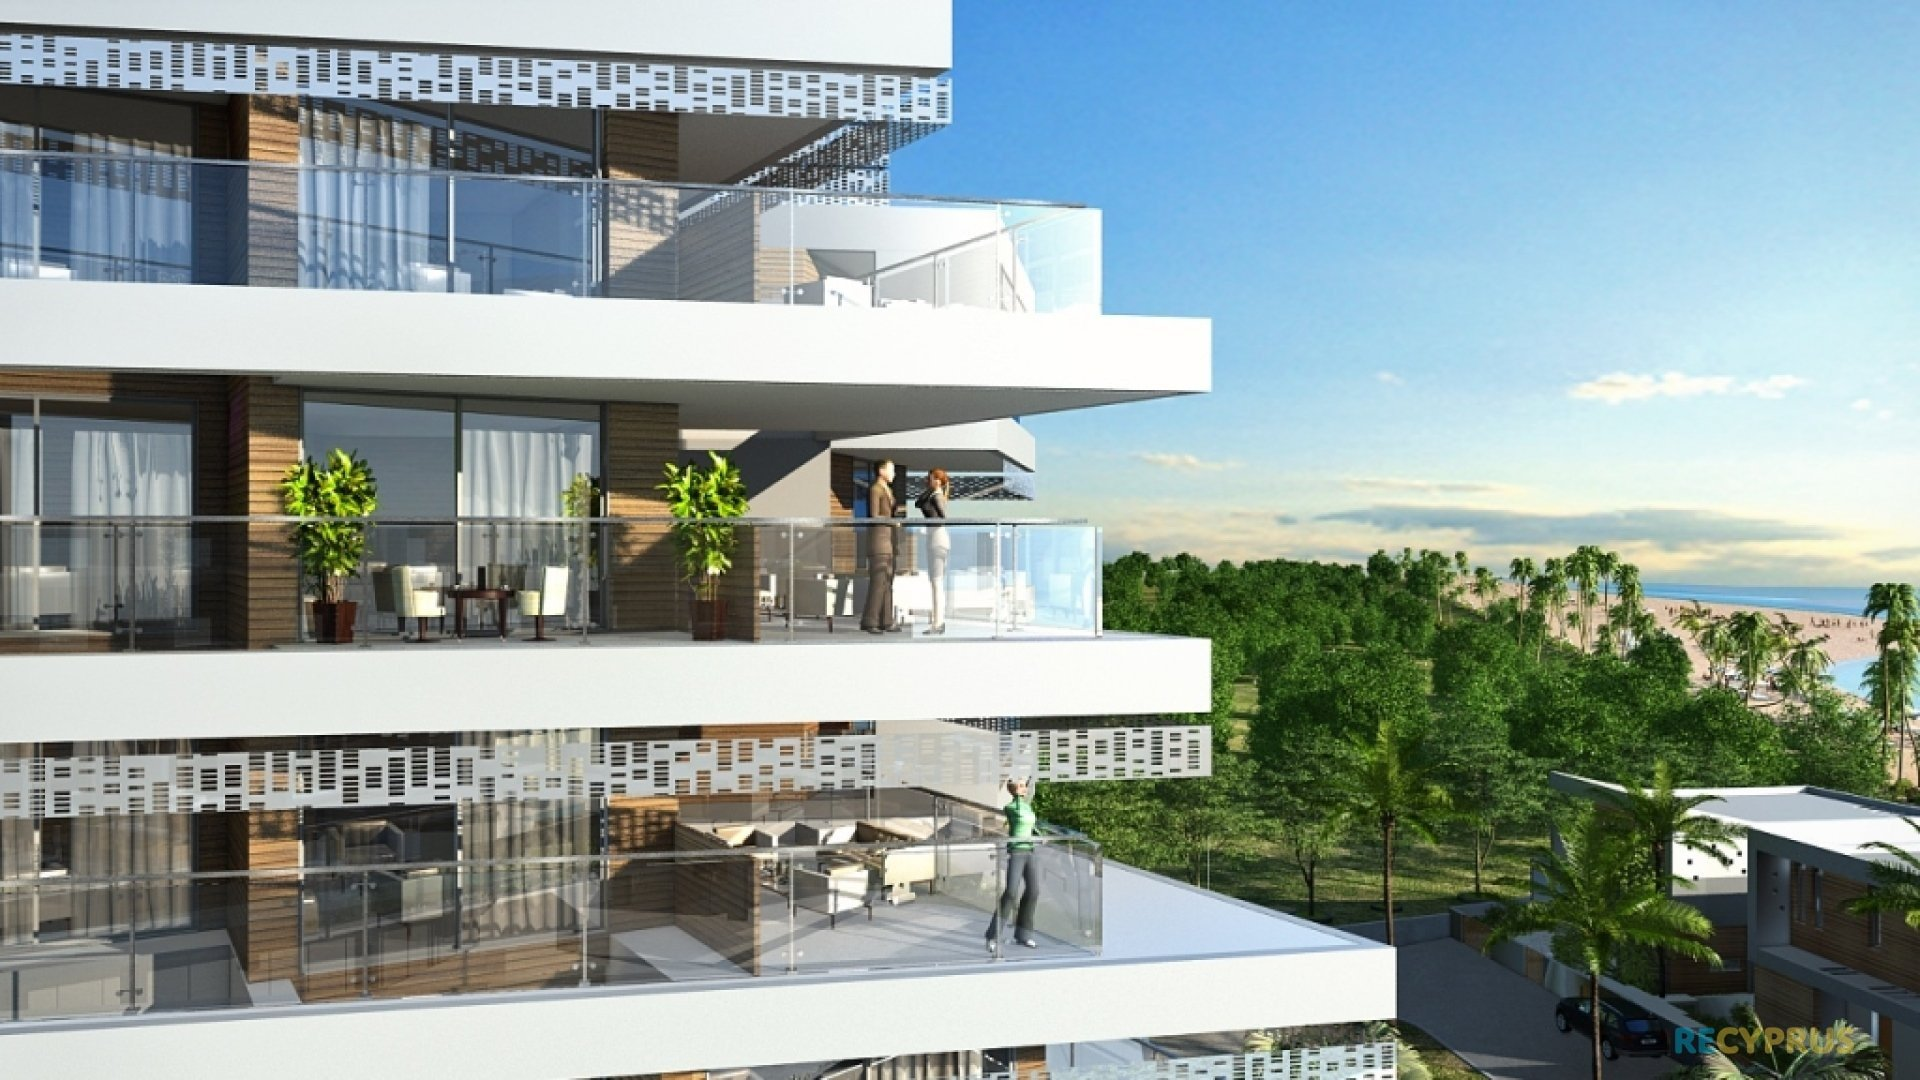 Apartment for sale Ayia Thekla Famagusta Cyprus 9 3477